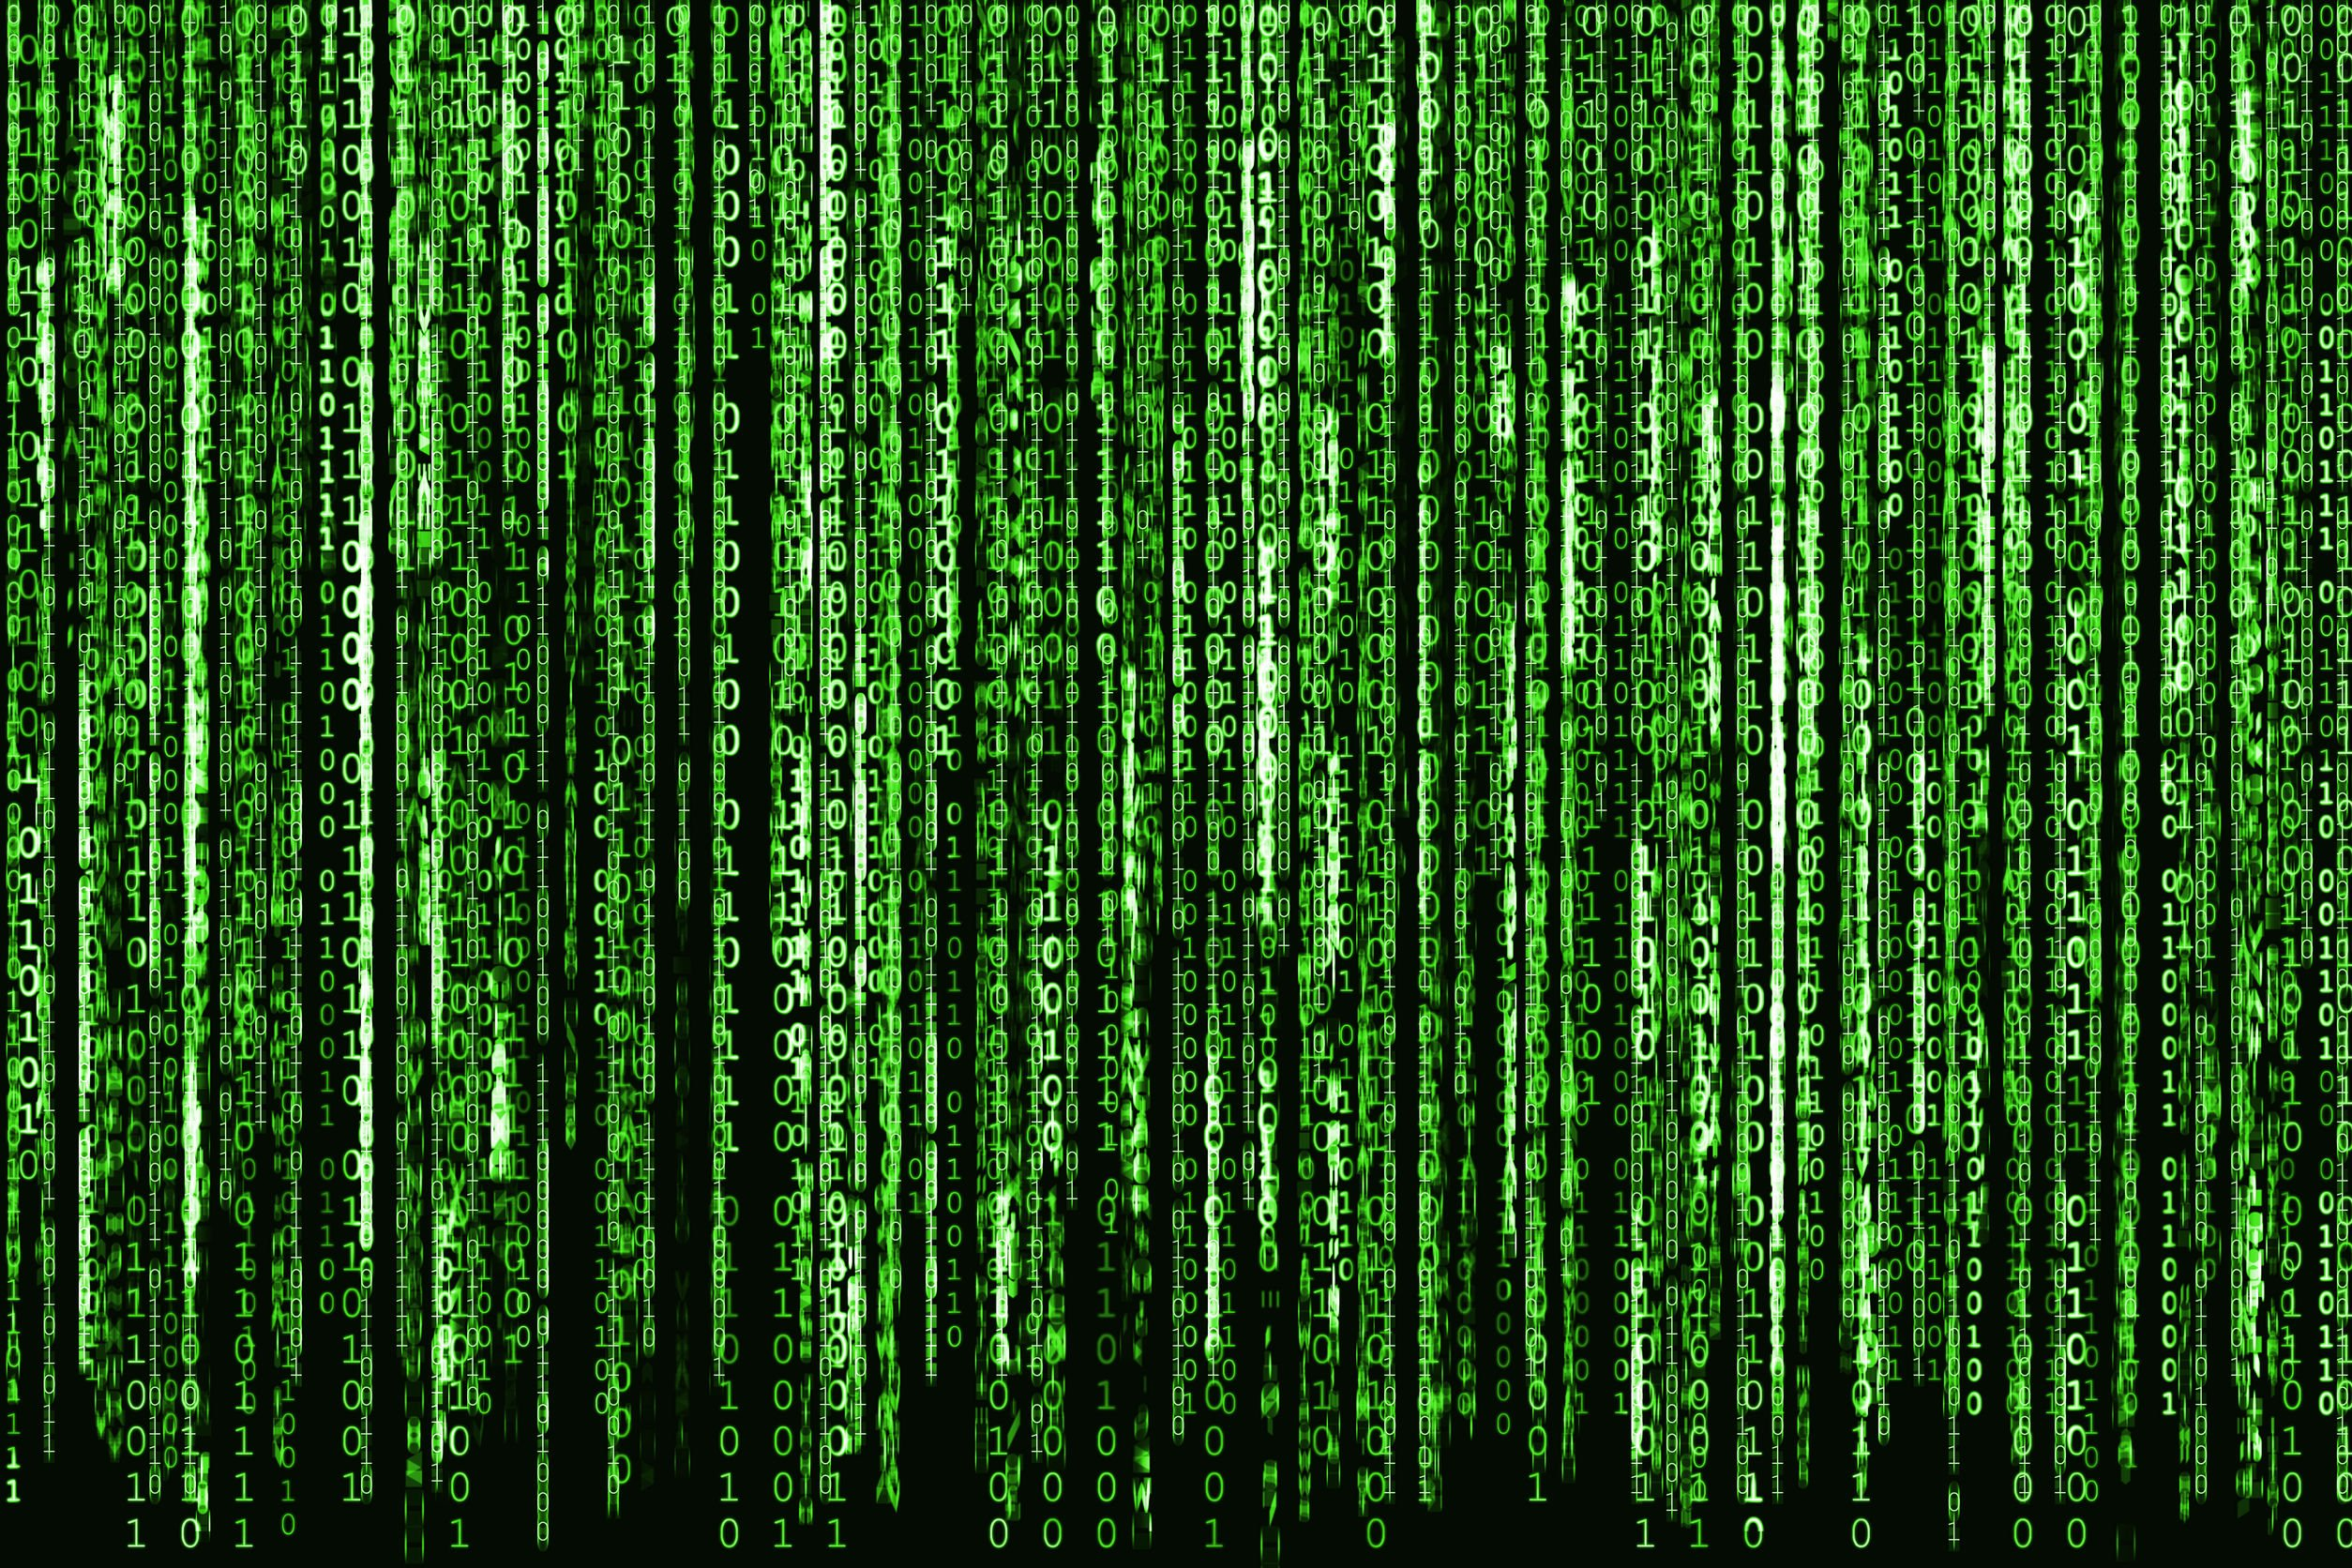 A picture of the Matrix, where everyone suffers from imposter syndrome if you think about it.